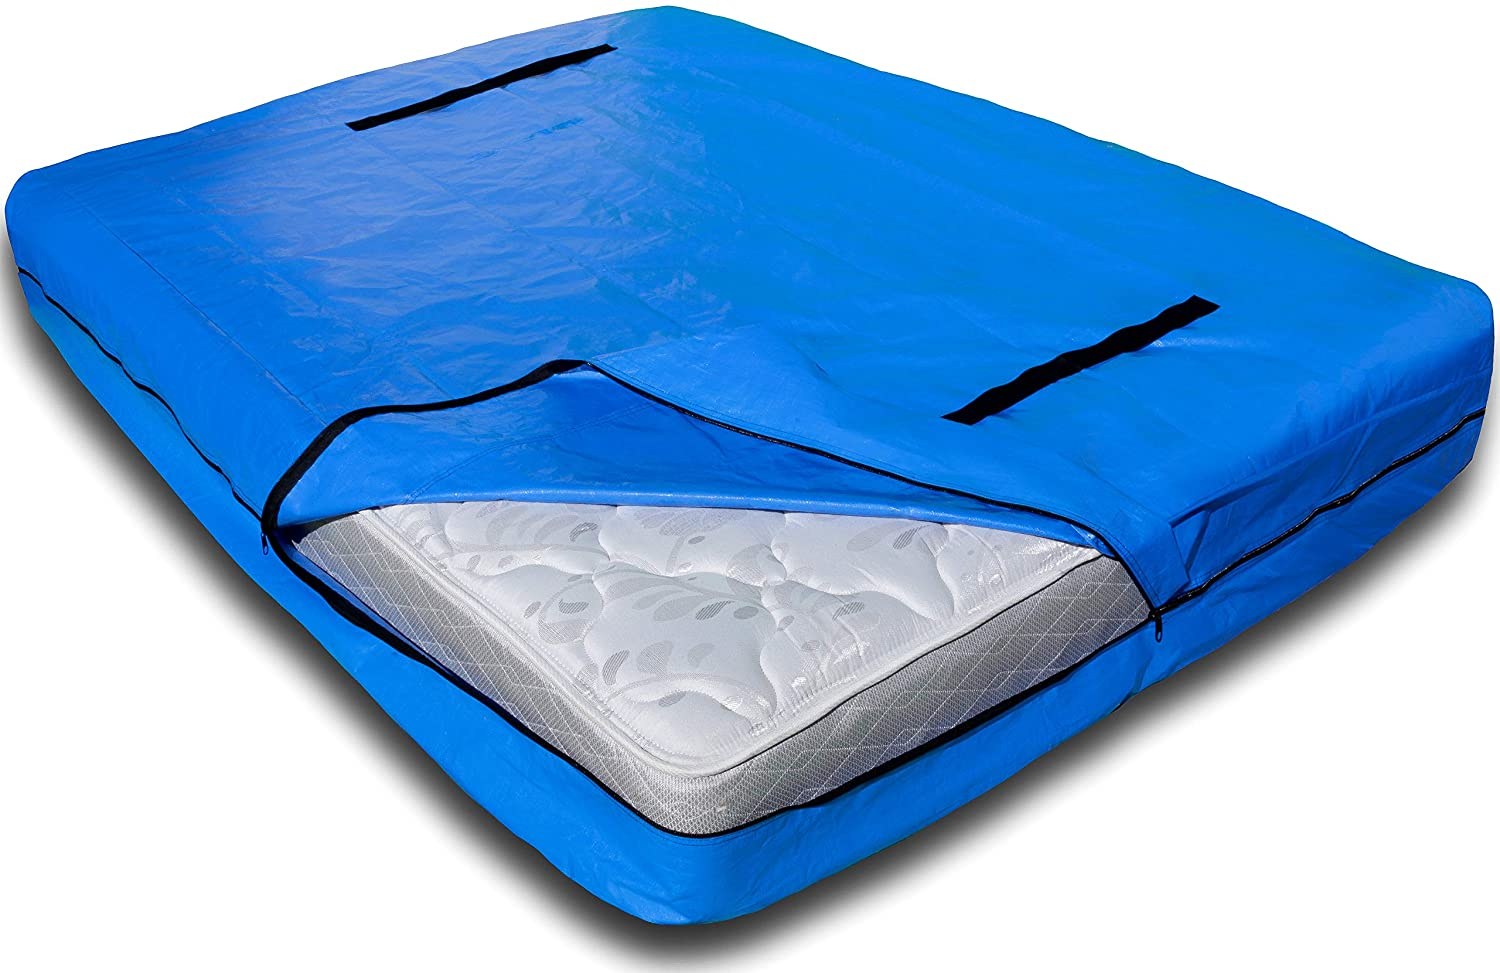 Nordic Elk Mattress Bag with 8 Handles for Moving and Storage